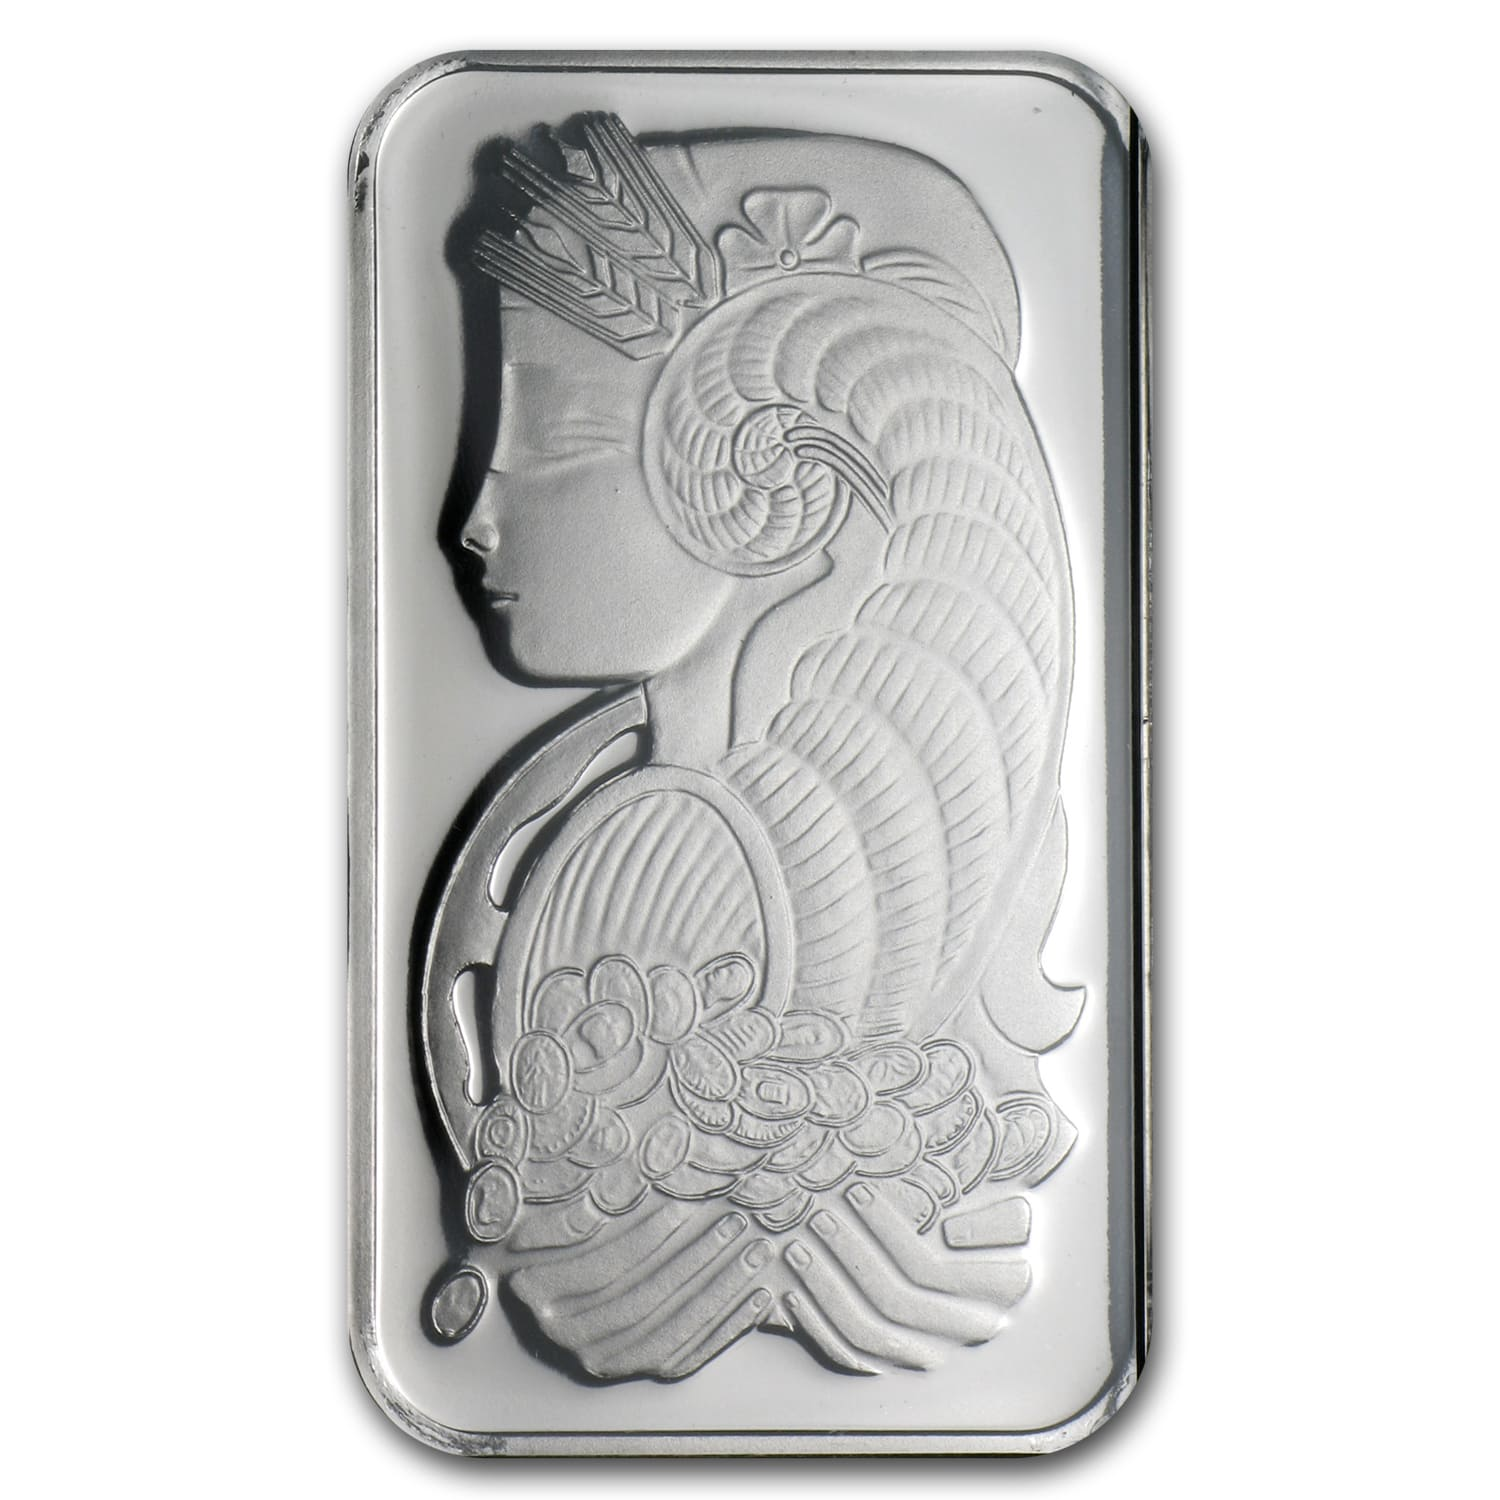 1 oz Platinum Bar - Pamp Suisse (In Assay) (Sept 11th)